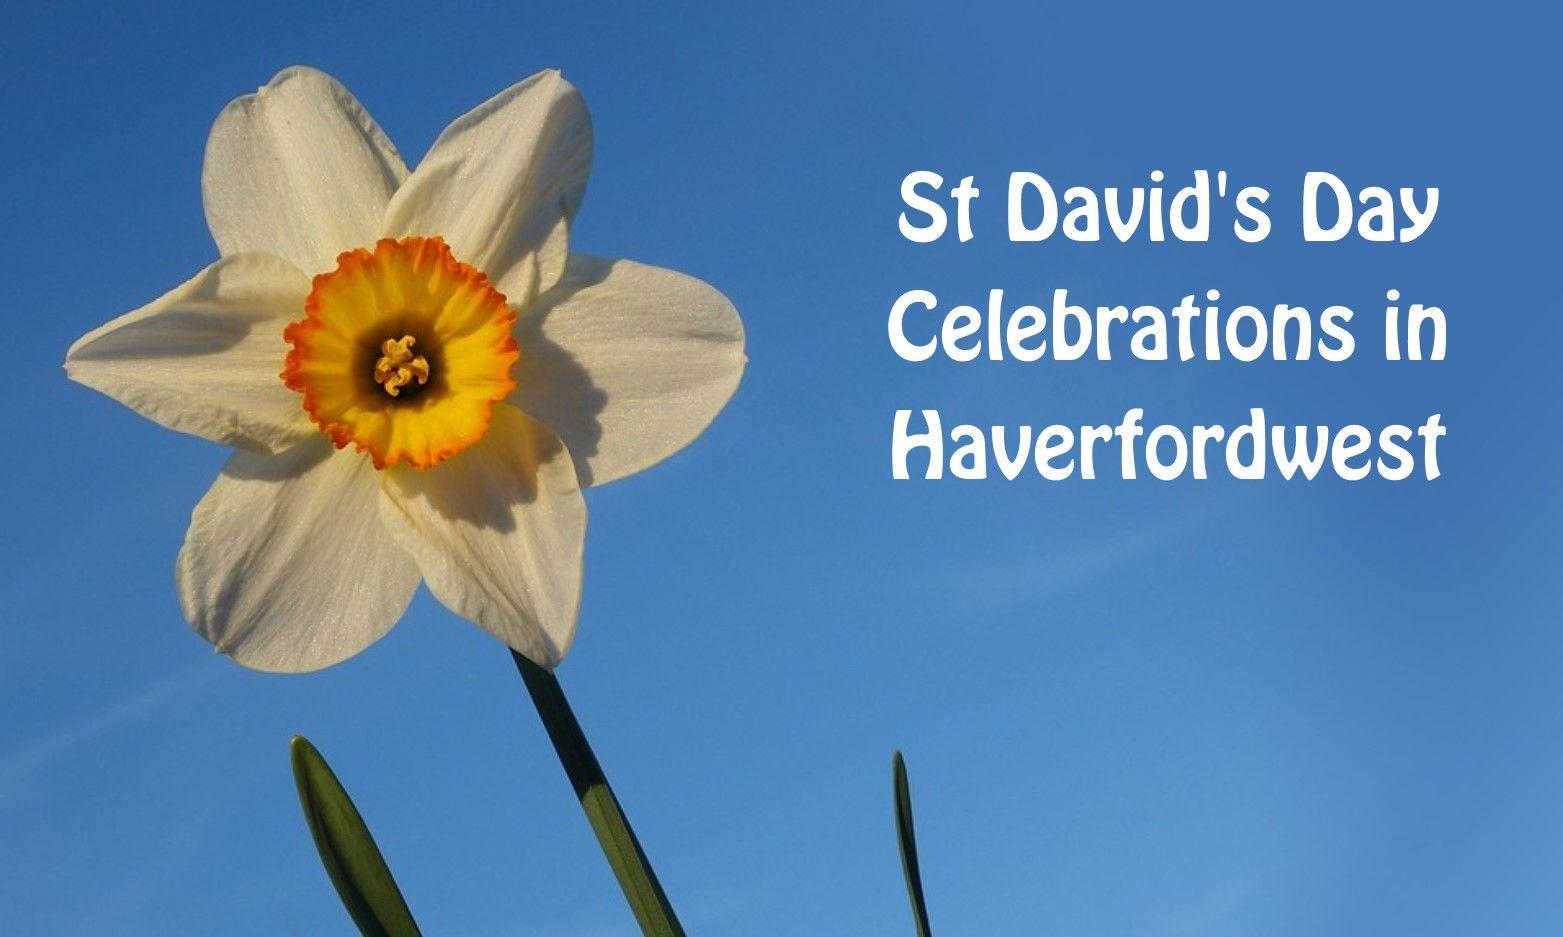 St David's Day Celebrations in Haverfordwest